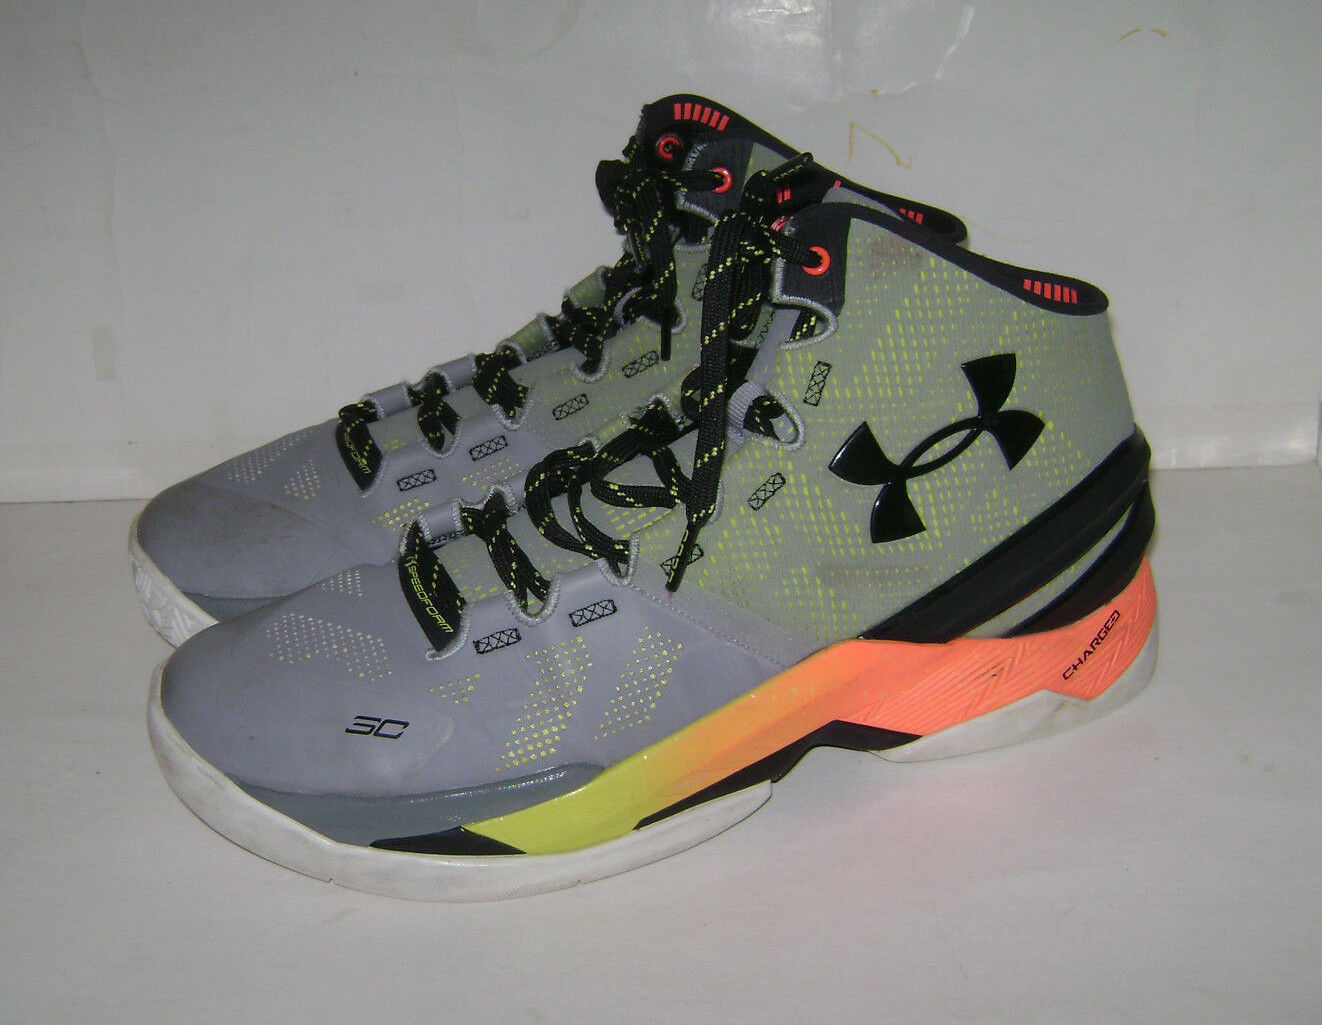 online store edc21 f4ef9 UA UNDER UNDER UNDER ARMOUR Curry Two Iron Sharpens Men Shoes Sneakers Size  11.5 1259007 035